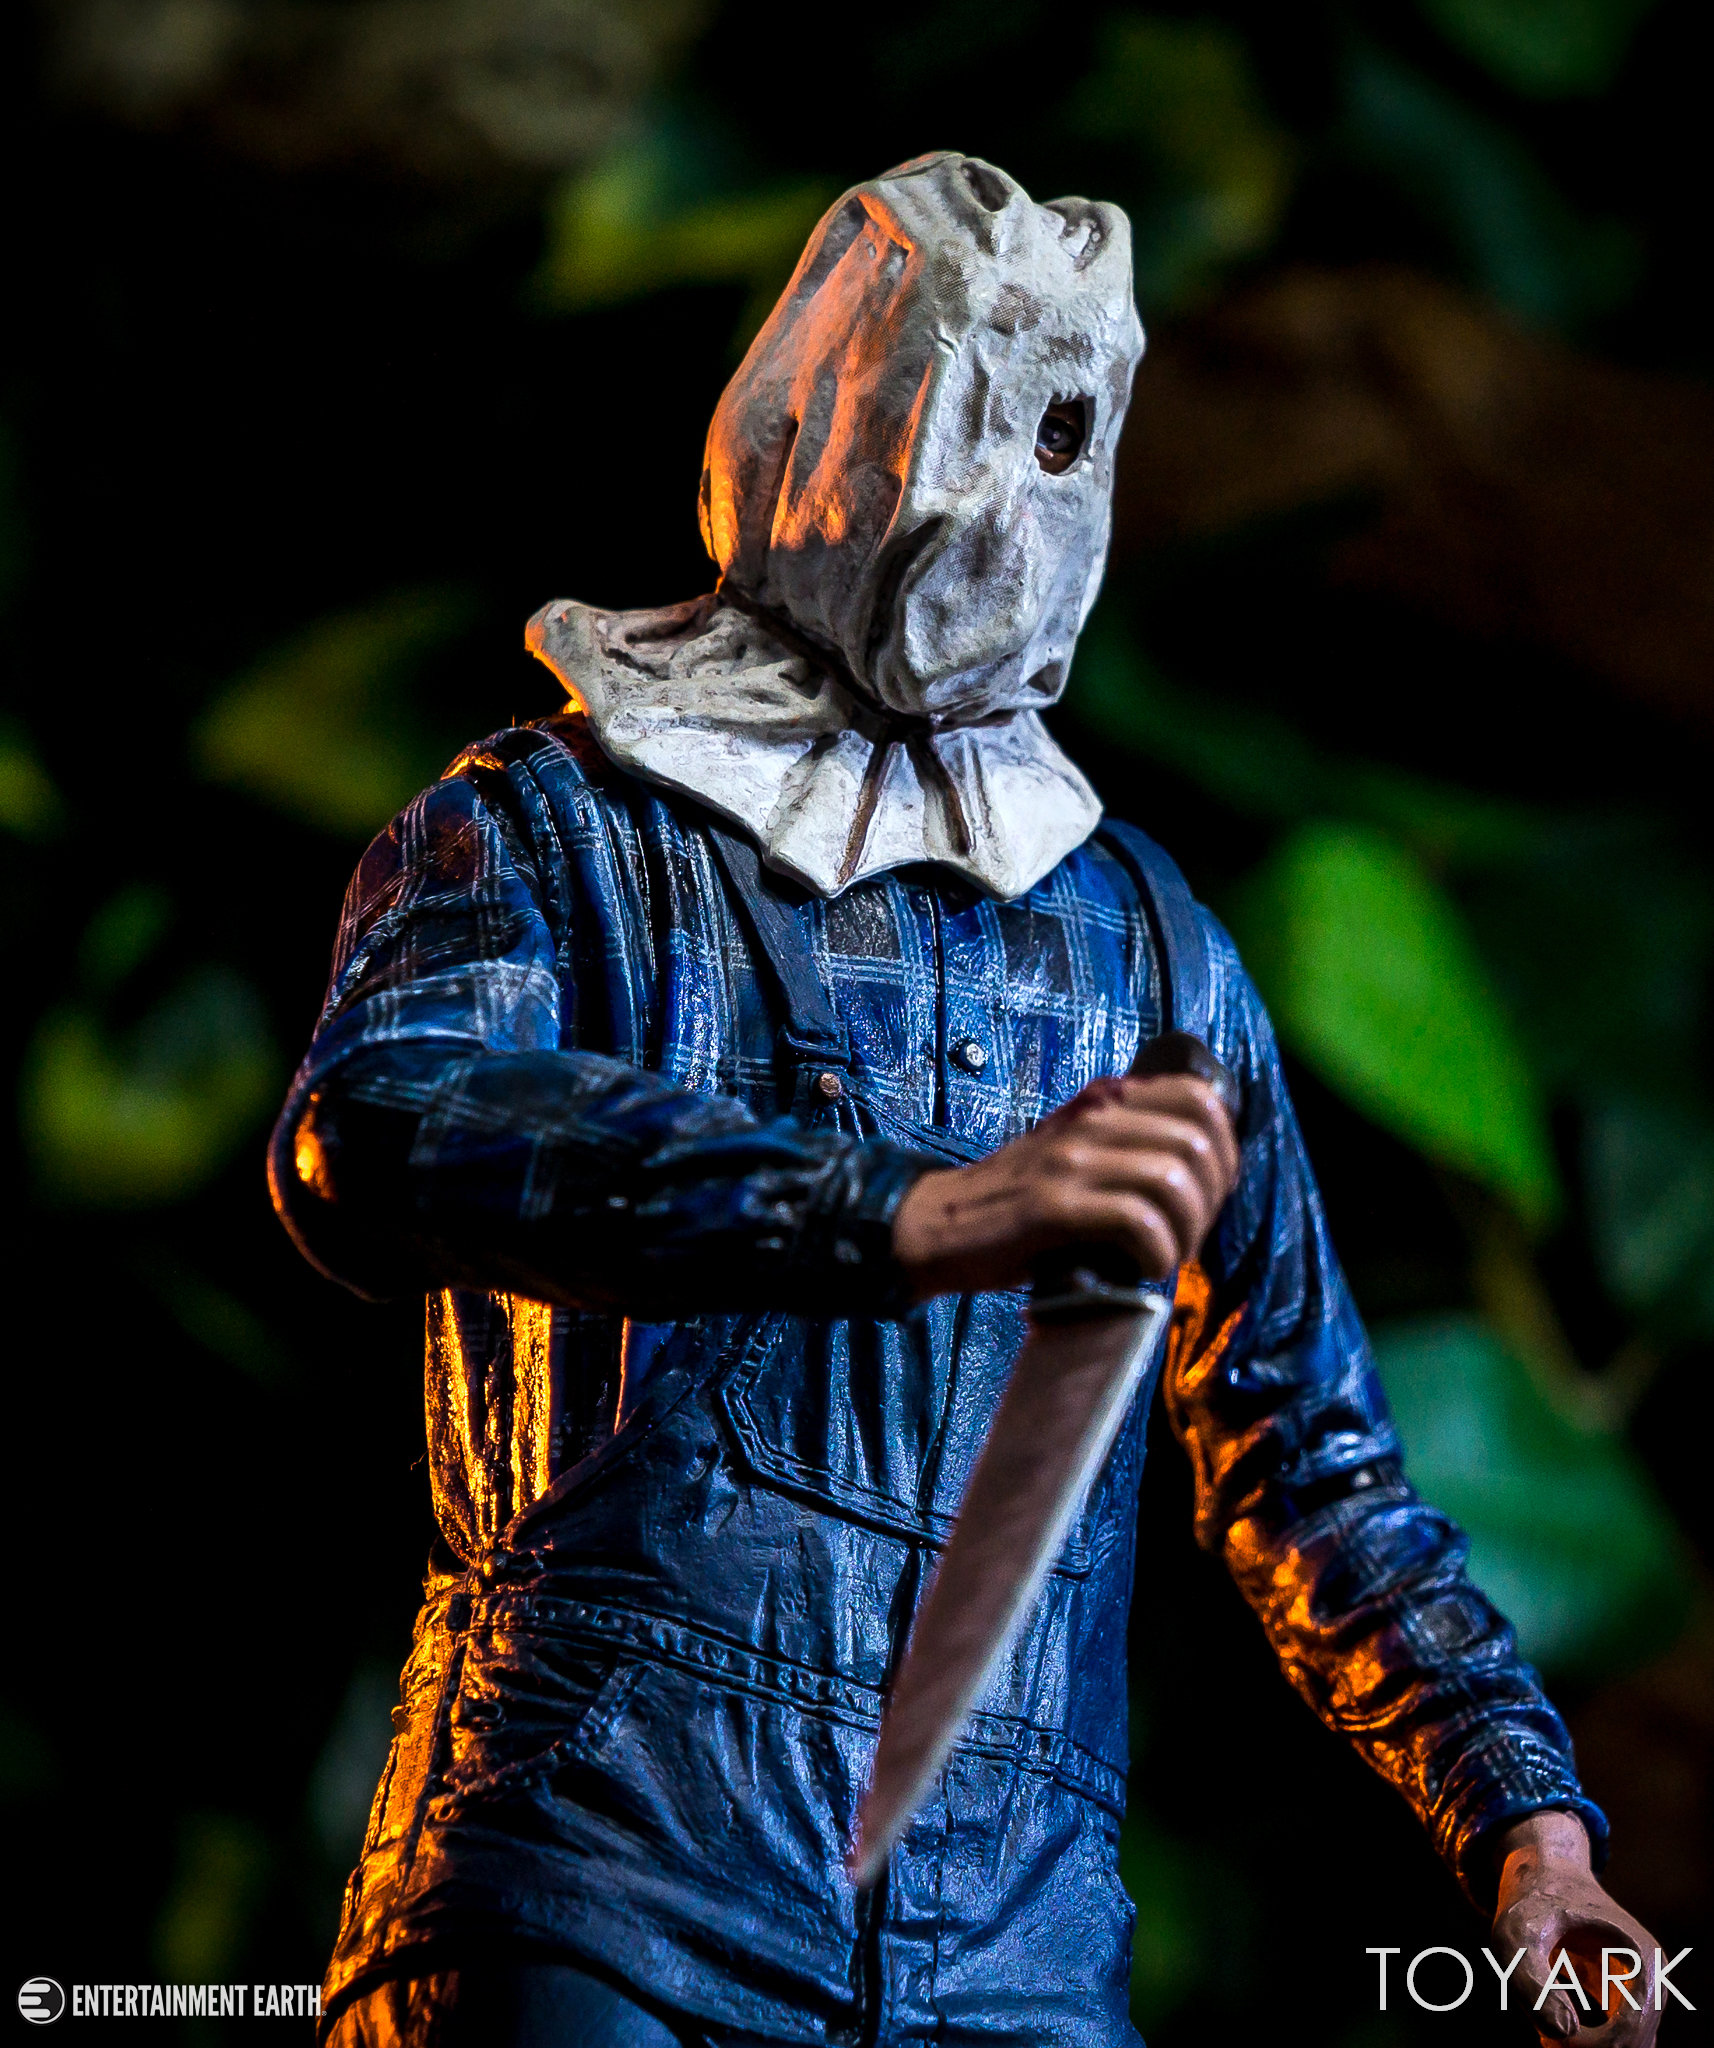 https://news.toyark.com/wp-content/uploads/sites/4/2018/08/NECA-Friday-the-13th-Part-2-Jason-014.jpg